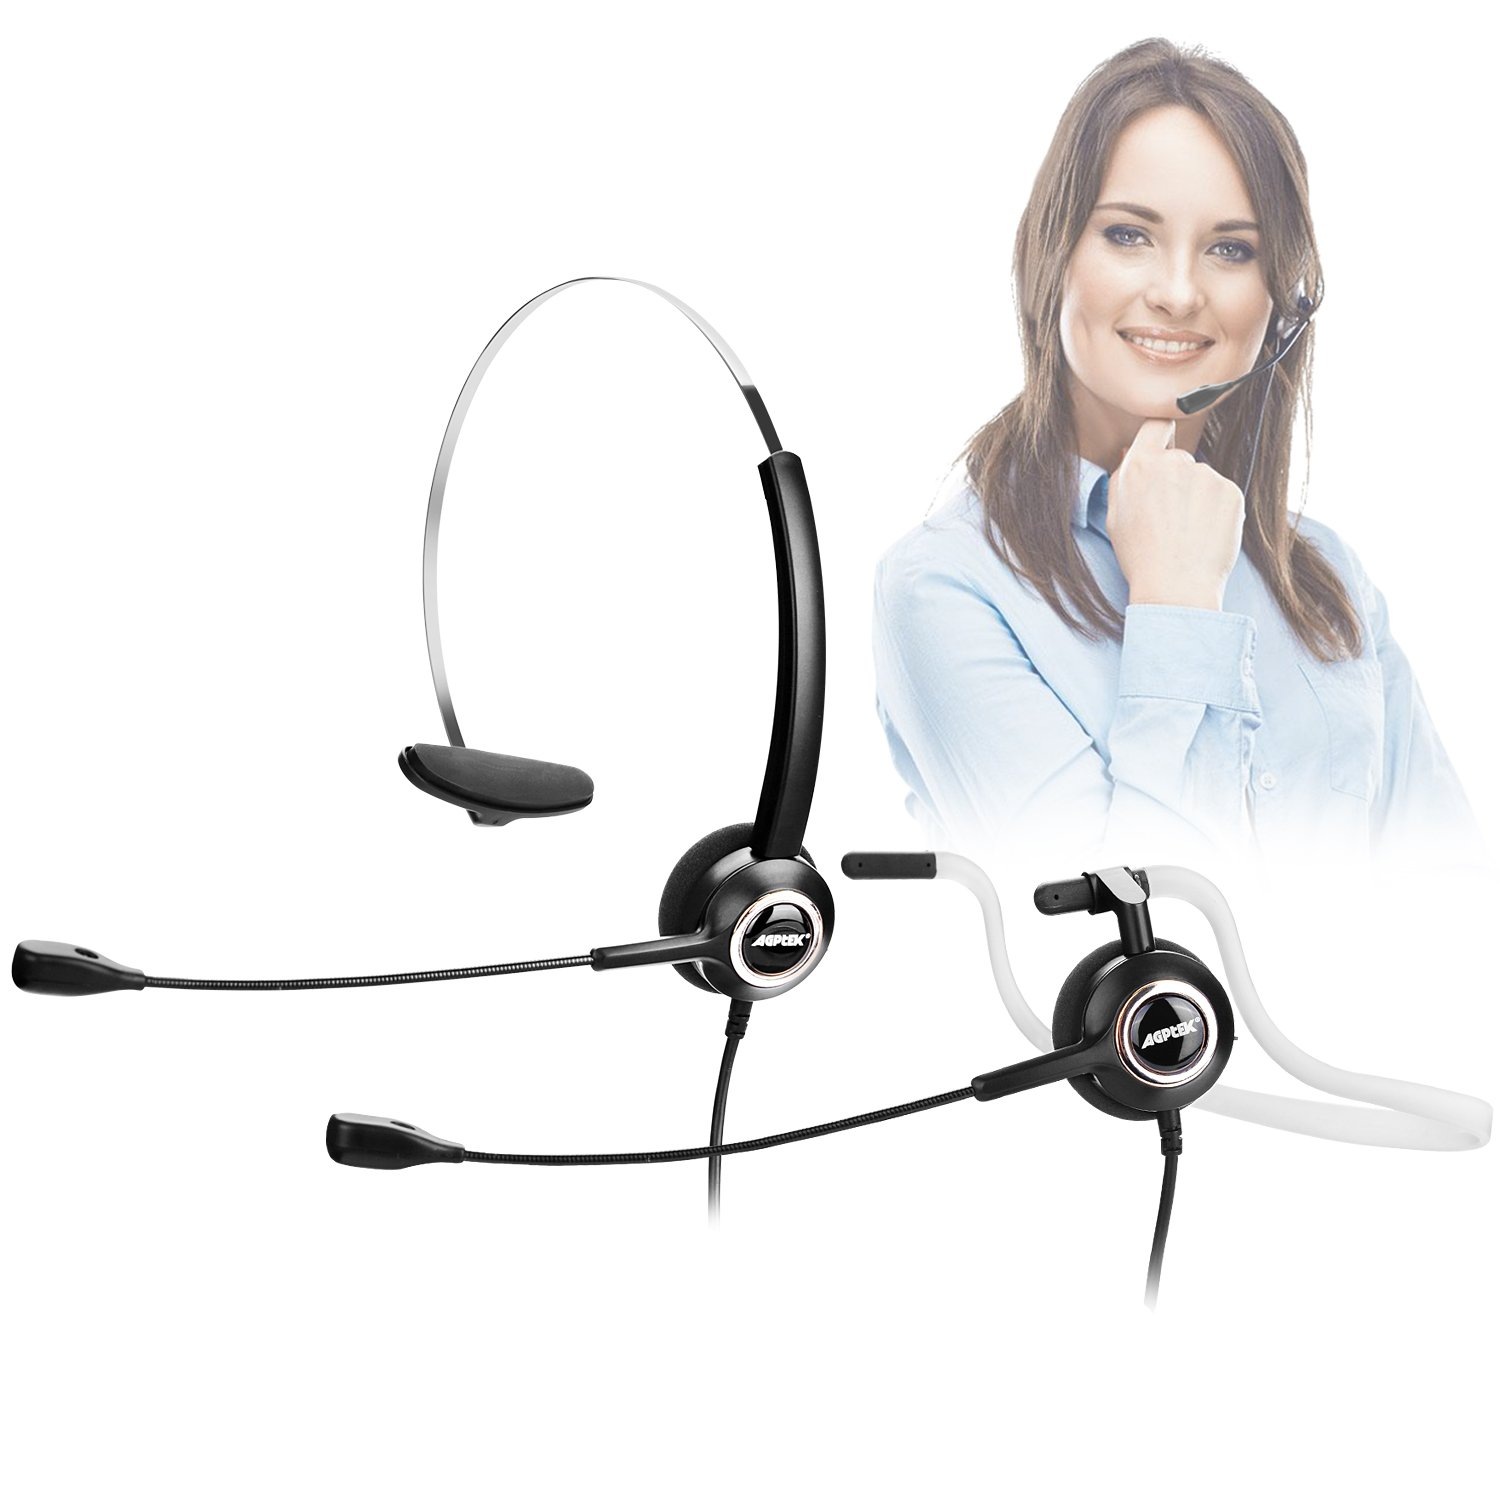 AGPtEK Noise Canceling Headset, Convertible RJ9 Earphone with Microphone & Adaptor, 2 Wearing Styles & Noise Canceling, Ideal for Office, Call Center & More by AGPTEK